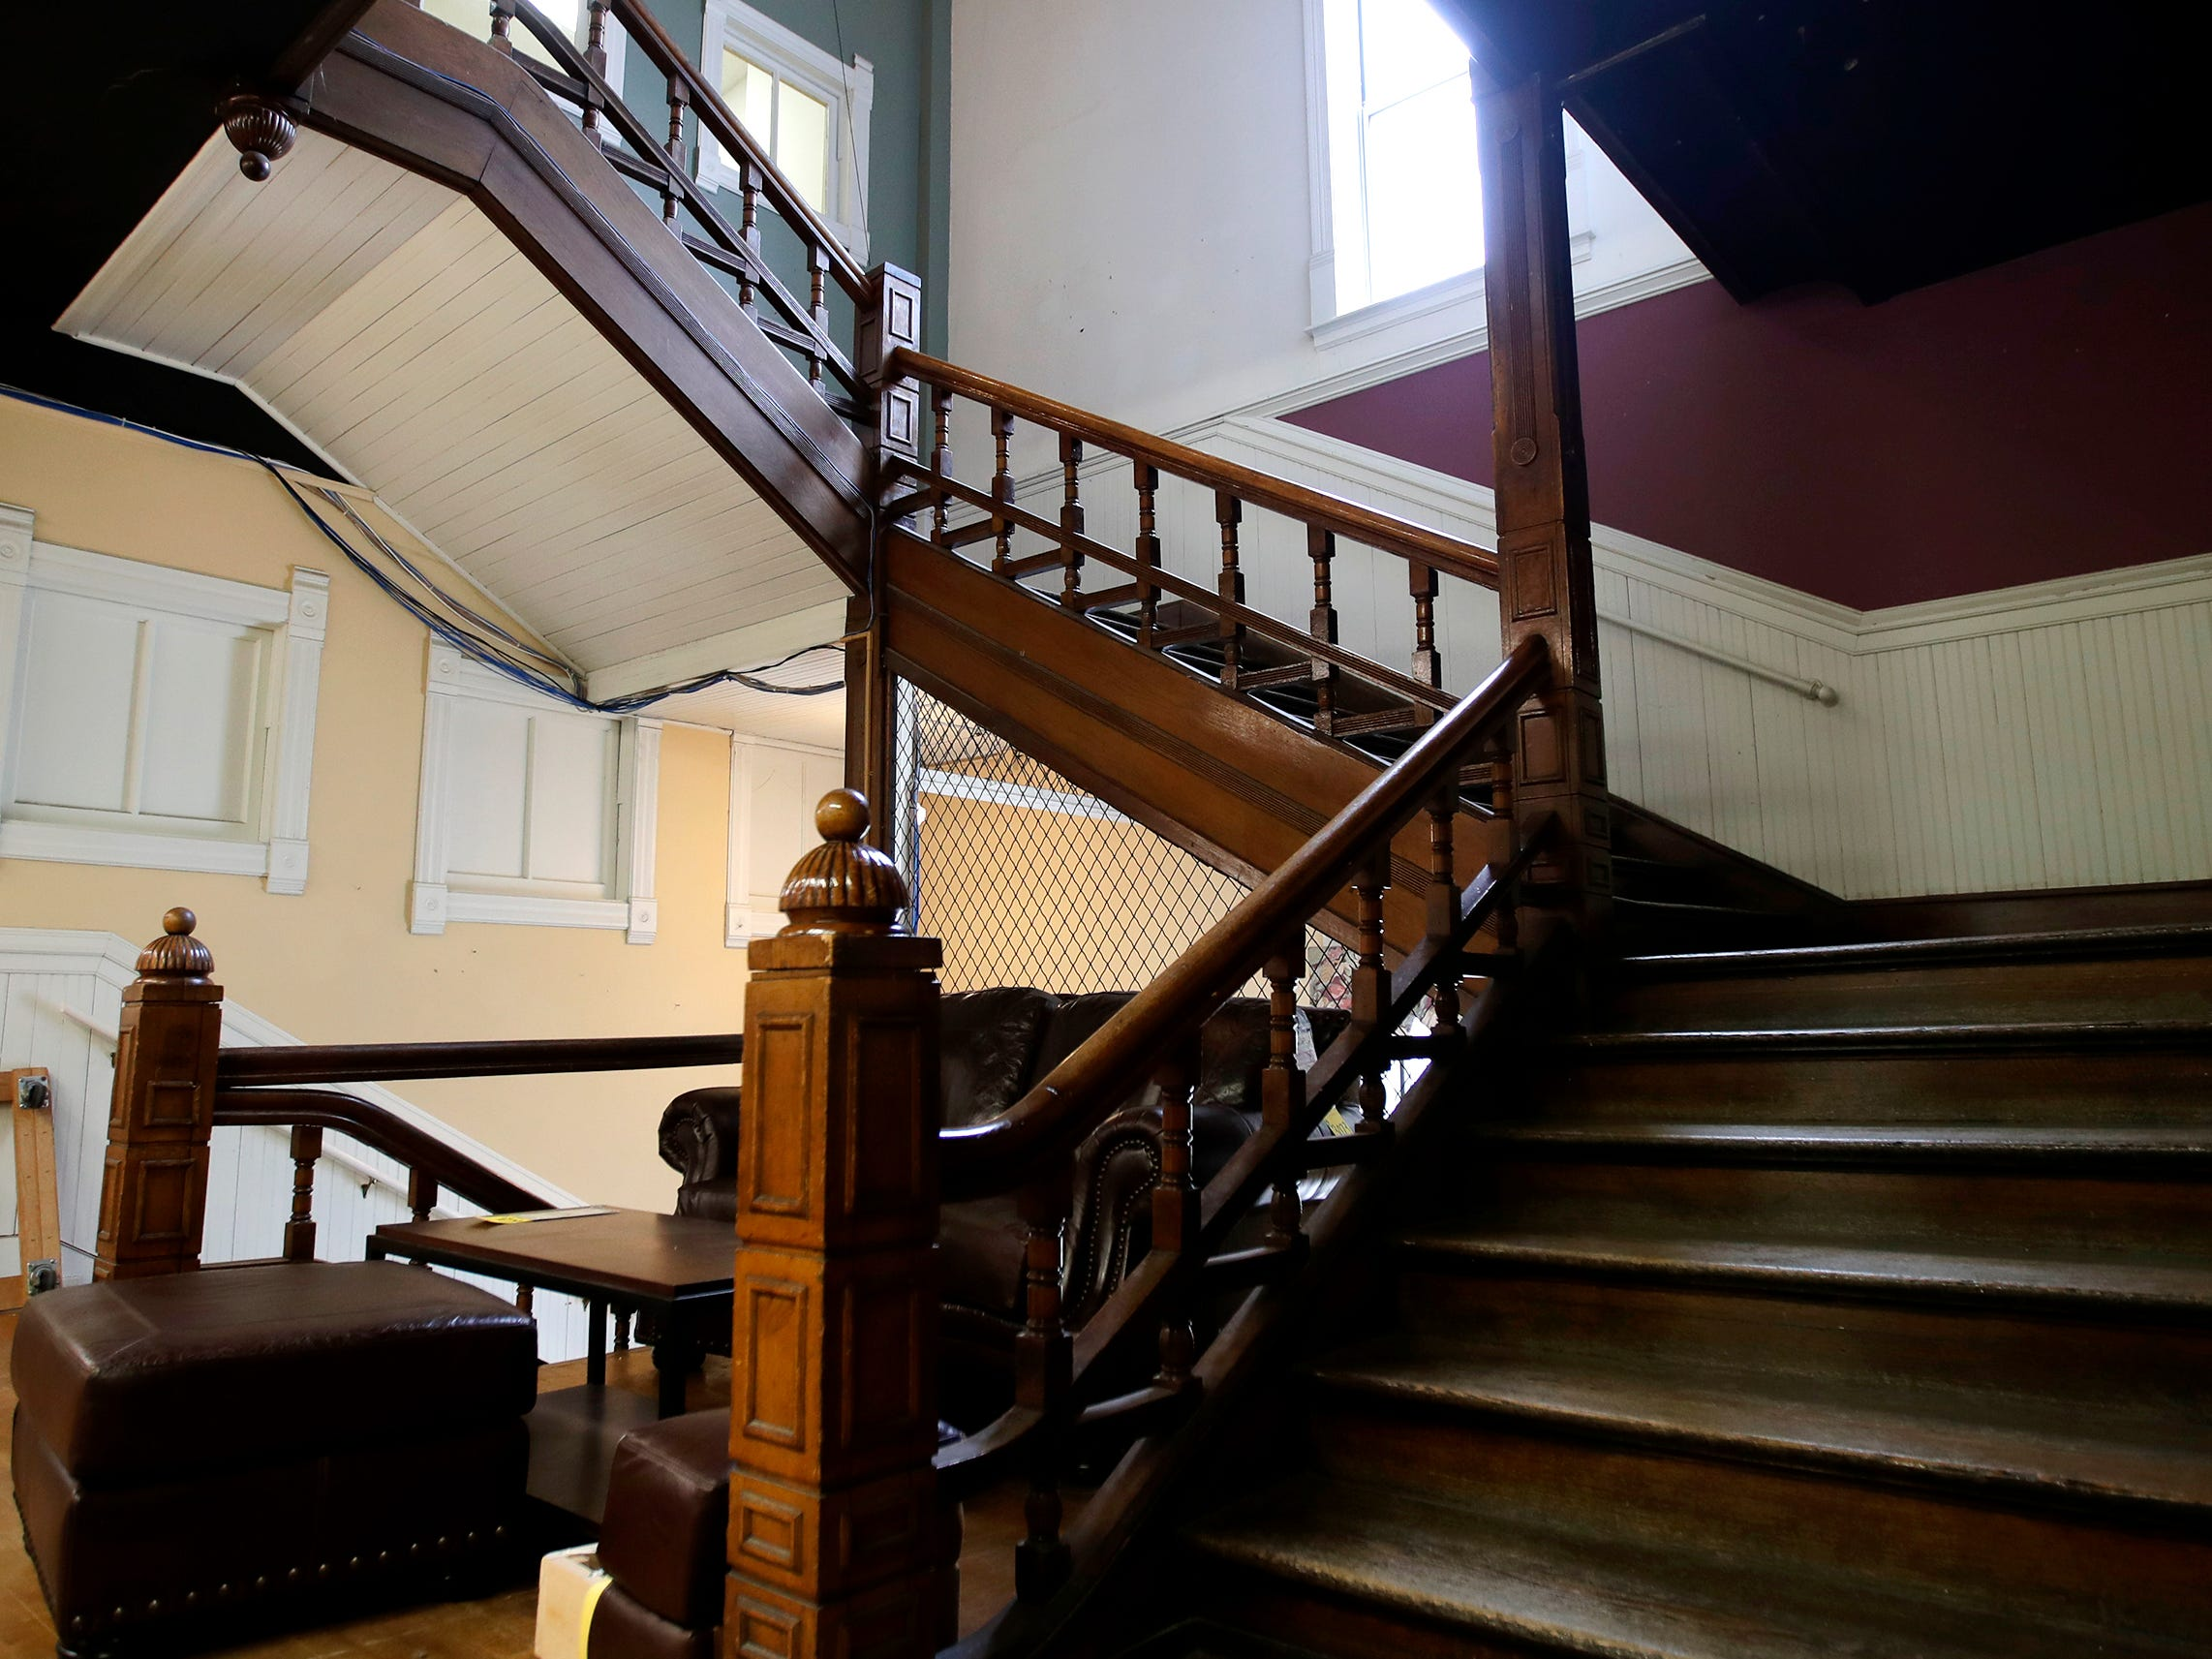 The grand staircase original to the building that houses Gabriel Furniture which was built in 1888 Thursday, April 18, 2019, in Appleton, Wis. 